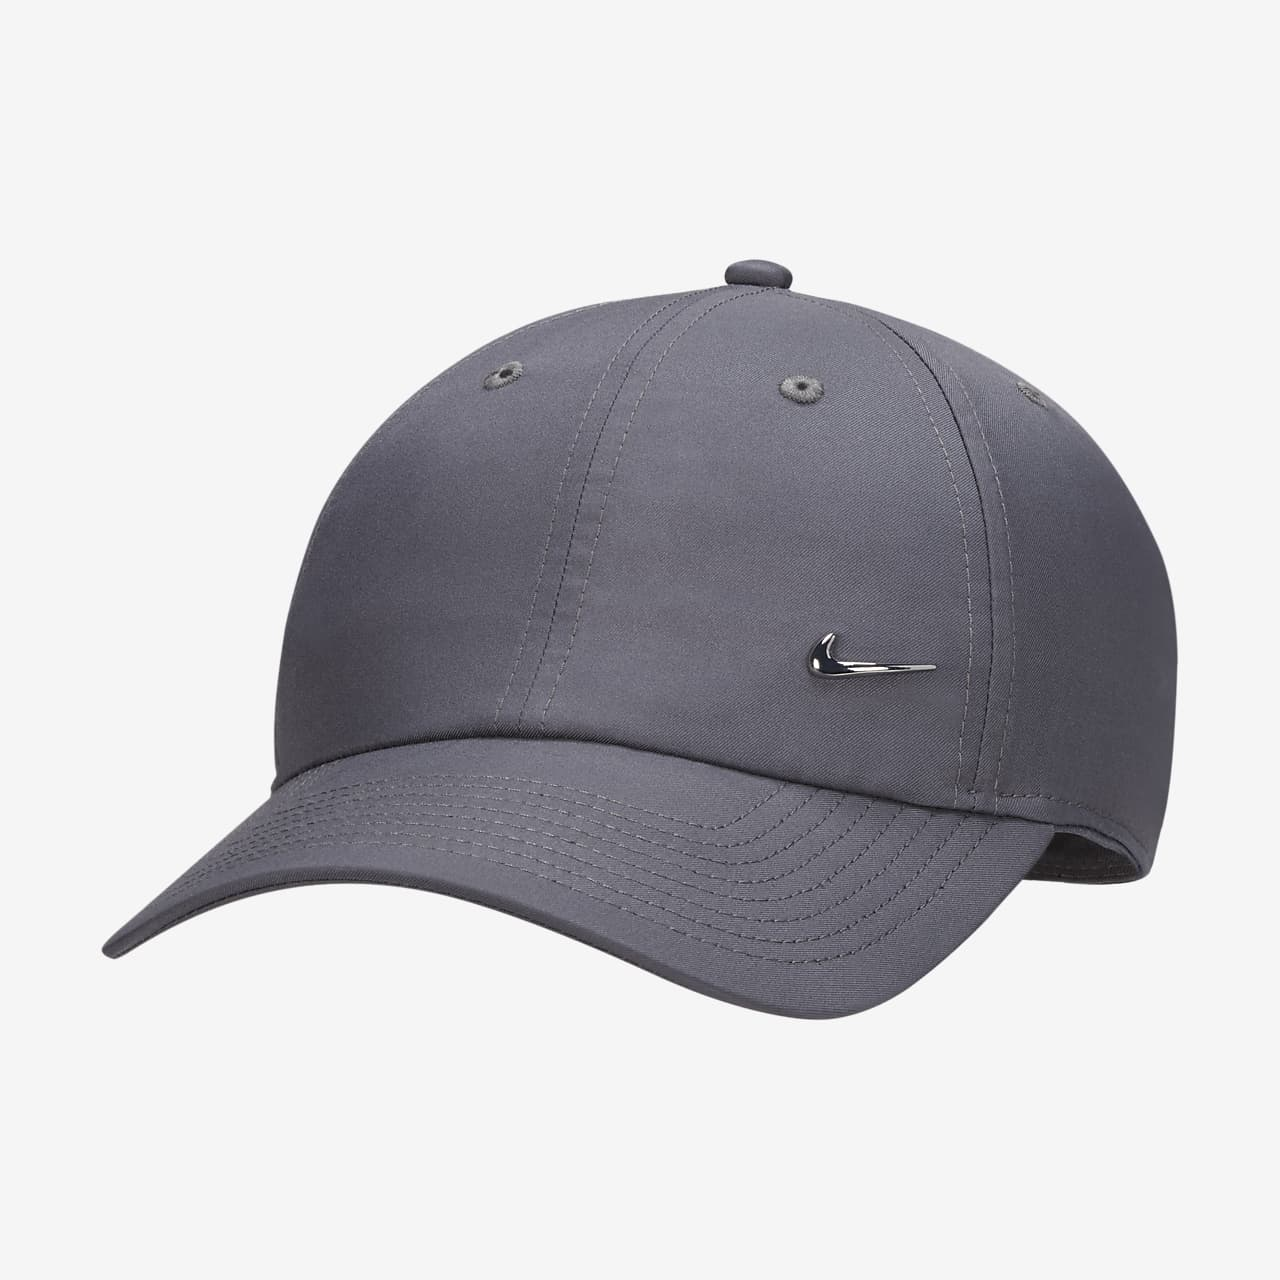 Nike Metal Swoosh H86 Adjustable Hat